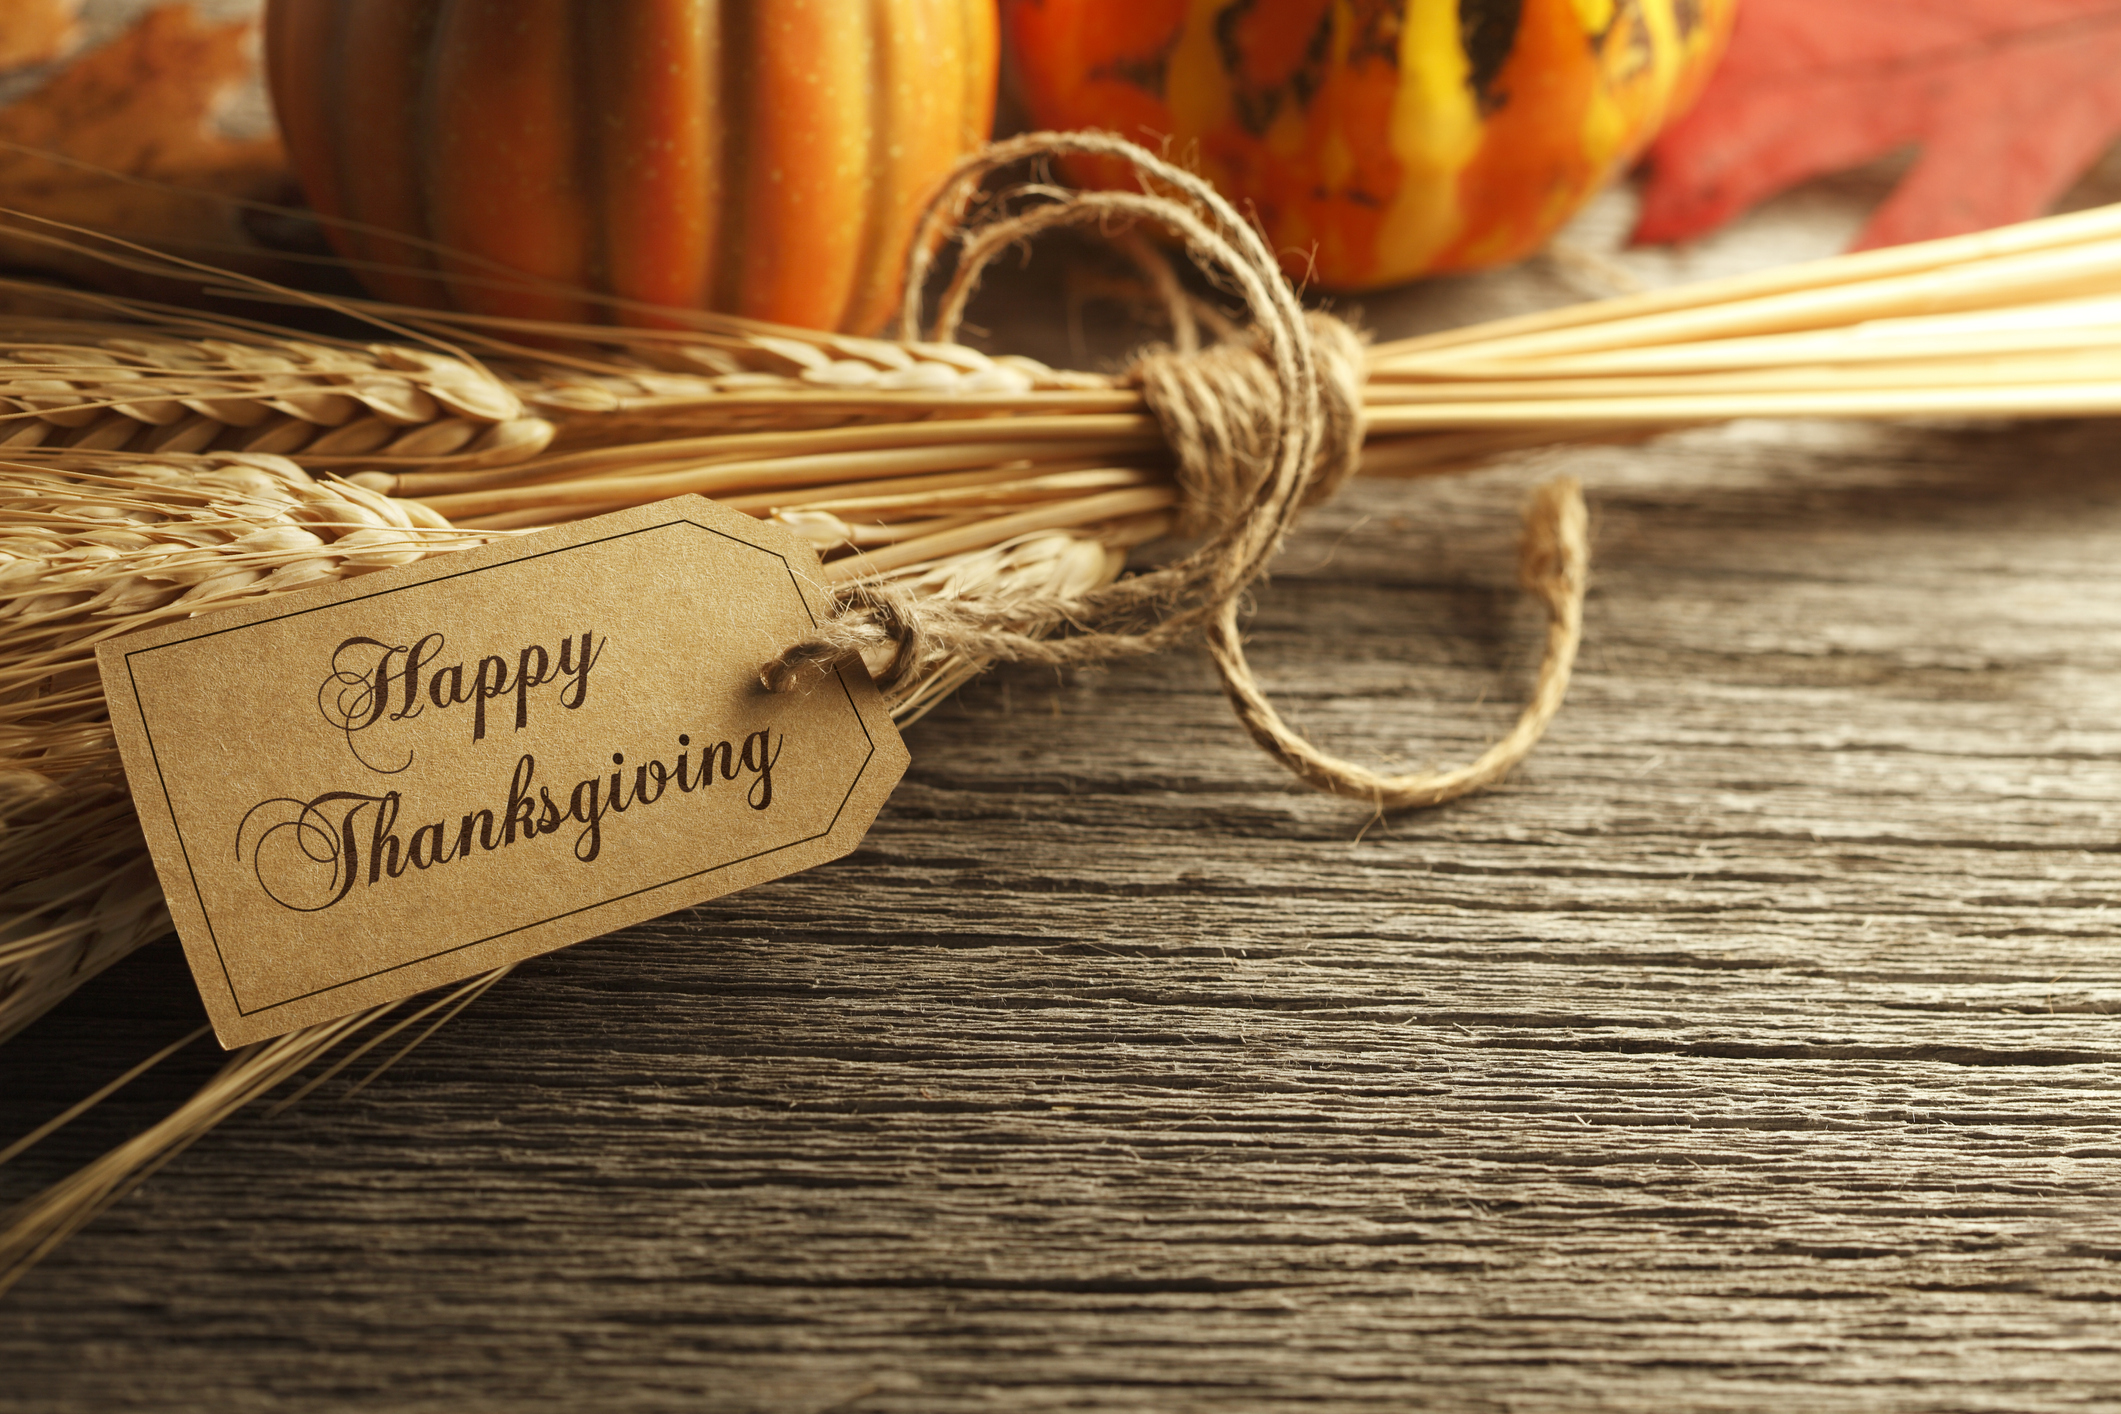 Happy Thanksgiving 2019 to Kitsap County Residents, Friends, and Family